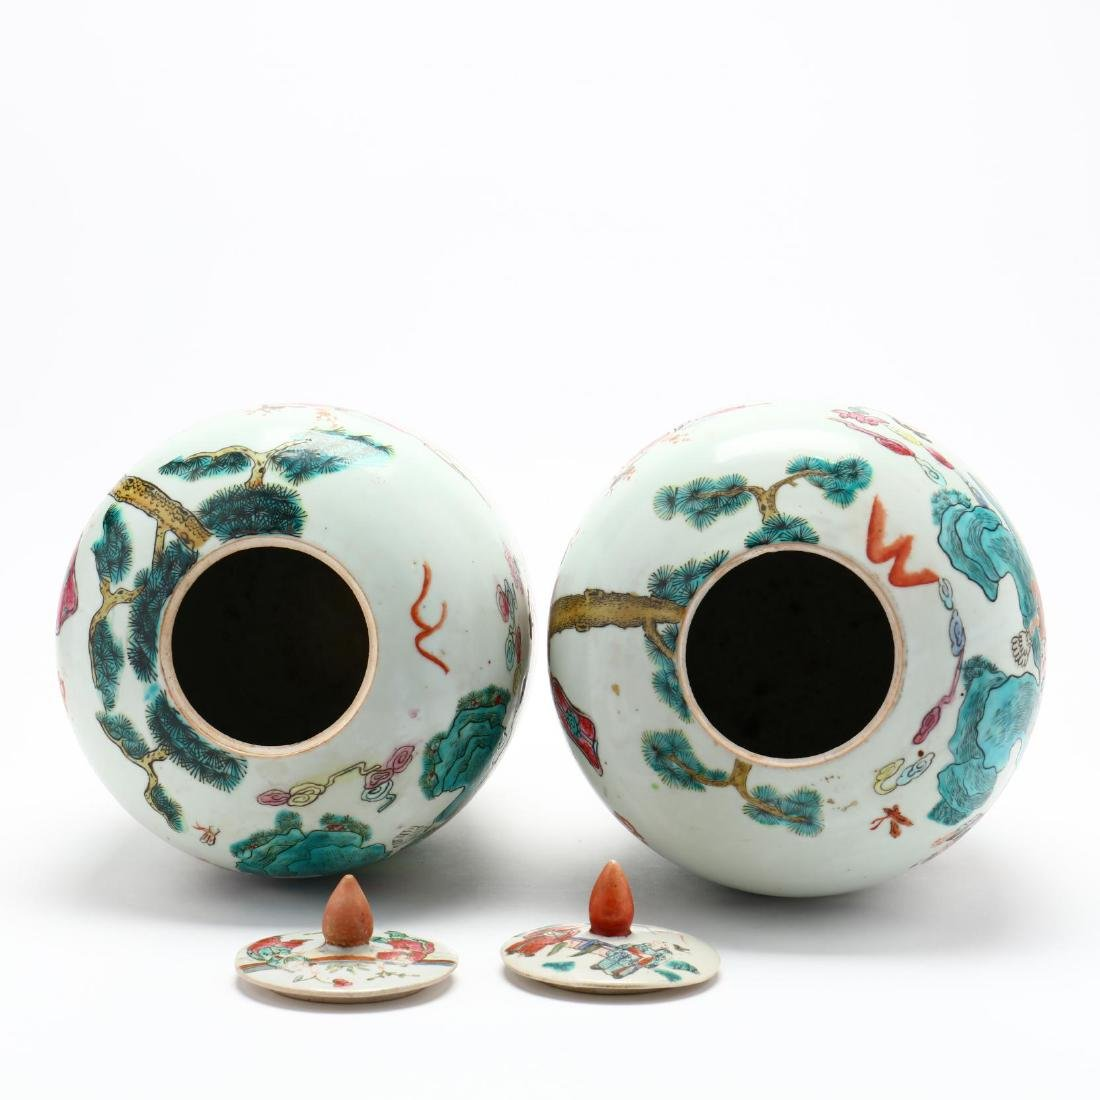 Pair of Chinese Export Porcelain Lidded Jars - 4